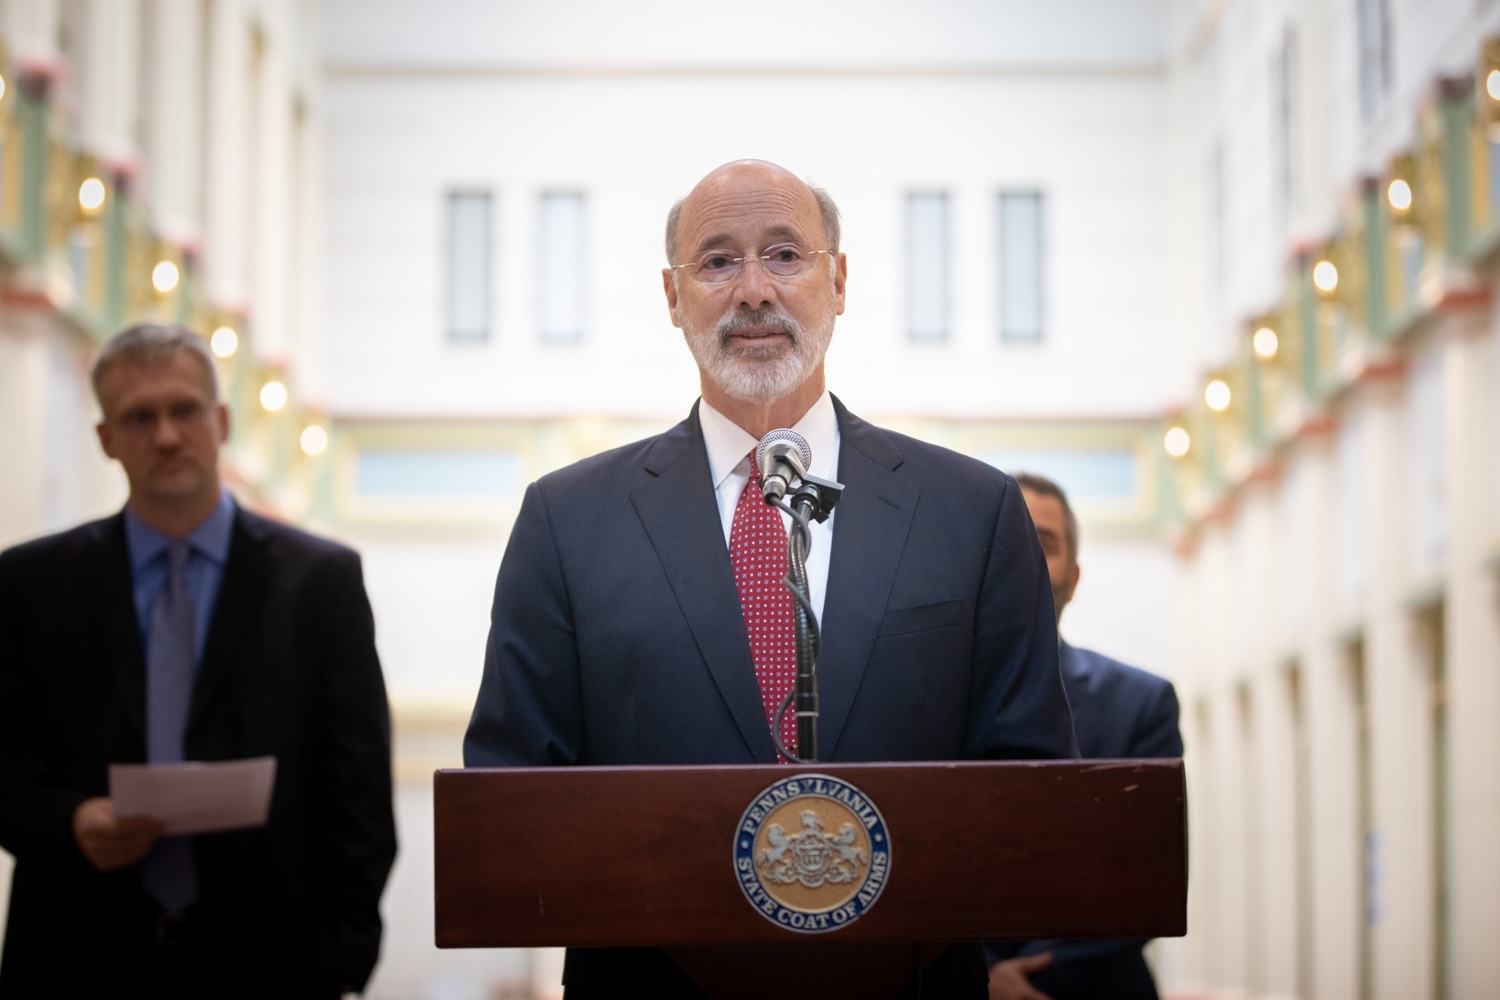 """<a href=""""https://filesource.wostreaming.net/commonwealthofpa/photo/17587_gov_pasmart_rural_robotics_dz_015.jpg"""" target=""""_blank"""">⇣Download Photo<br></a>Pennsylvania Governor Tom Wolf speaks at the robotics demonstration.   Celebrating the success of the PAsmart workforce development program to create educational opportunities at schools across the commonwealth, Governor Tom Wolf welcomed more than 50 students from the Pennsylvania Rural Robotics Initiative to the Capitol today. The students from nine western Pennsylvania school districts showcased their skills in coding, robotics and drone technology. The Wolf administration awarded the initiative a $299,000 PAsmart Advancing Grant earlier this year. Harrisburg, PA  Tuesday, November 12, 2019"""